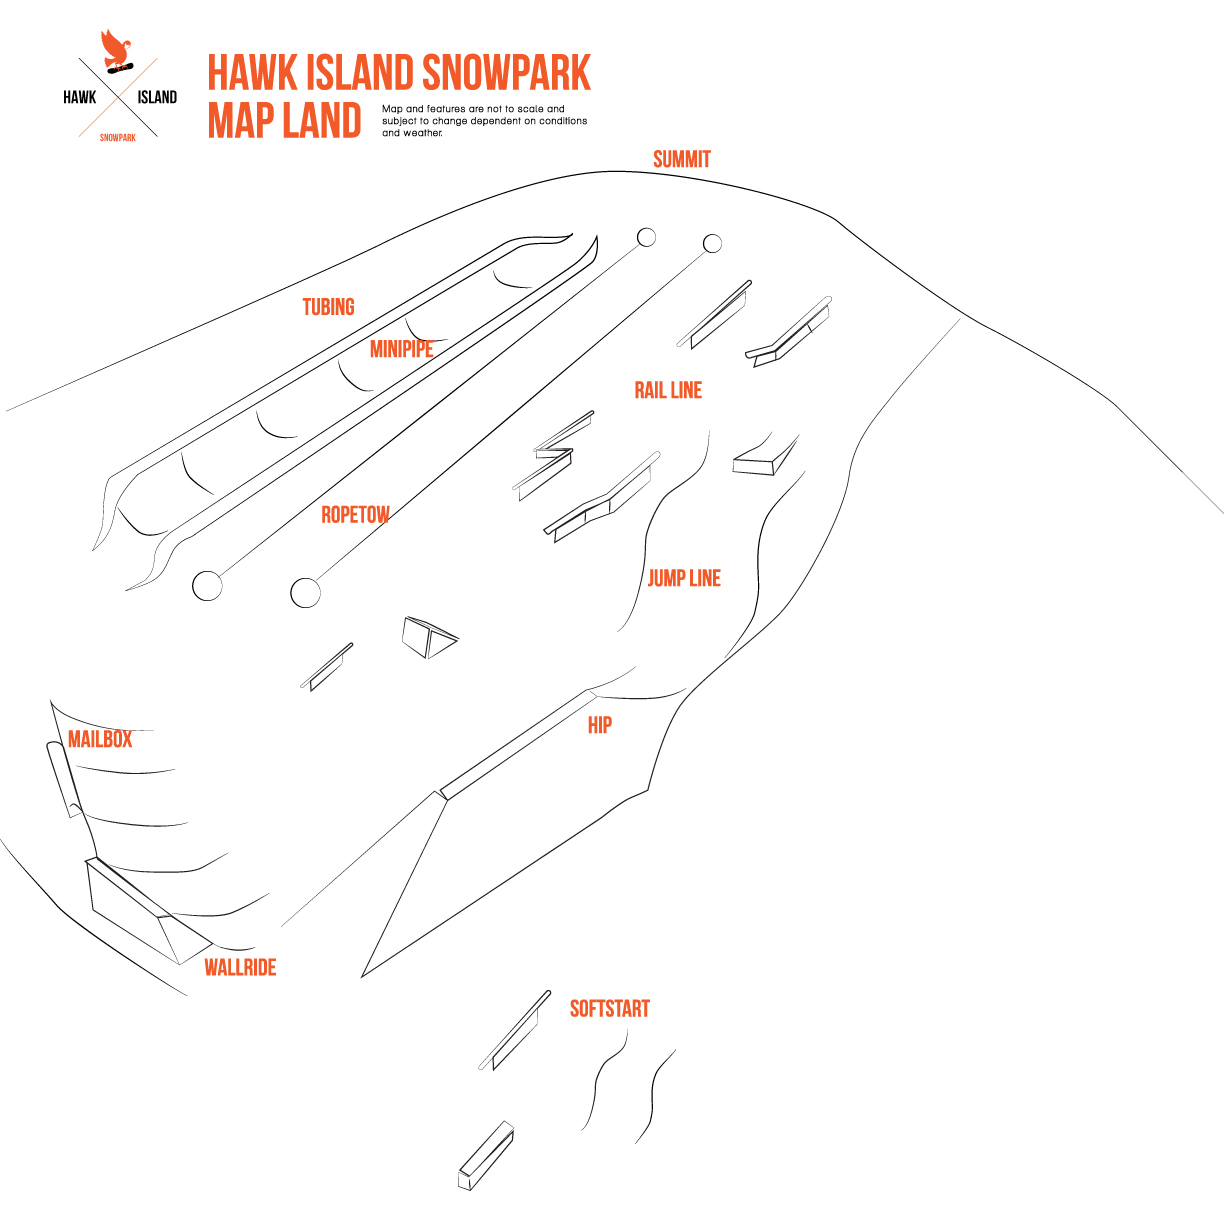 Updated terrain plan for Hawk Island snow park